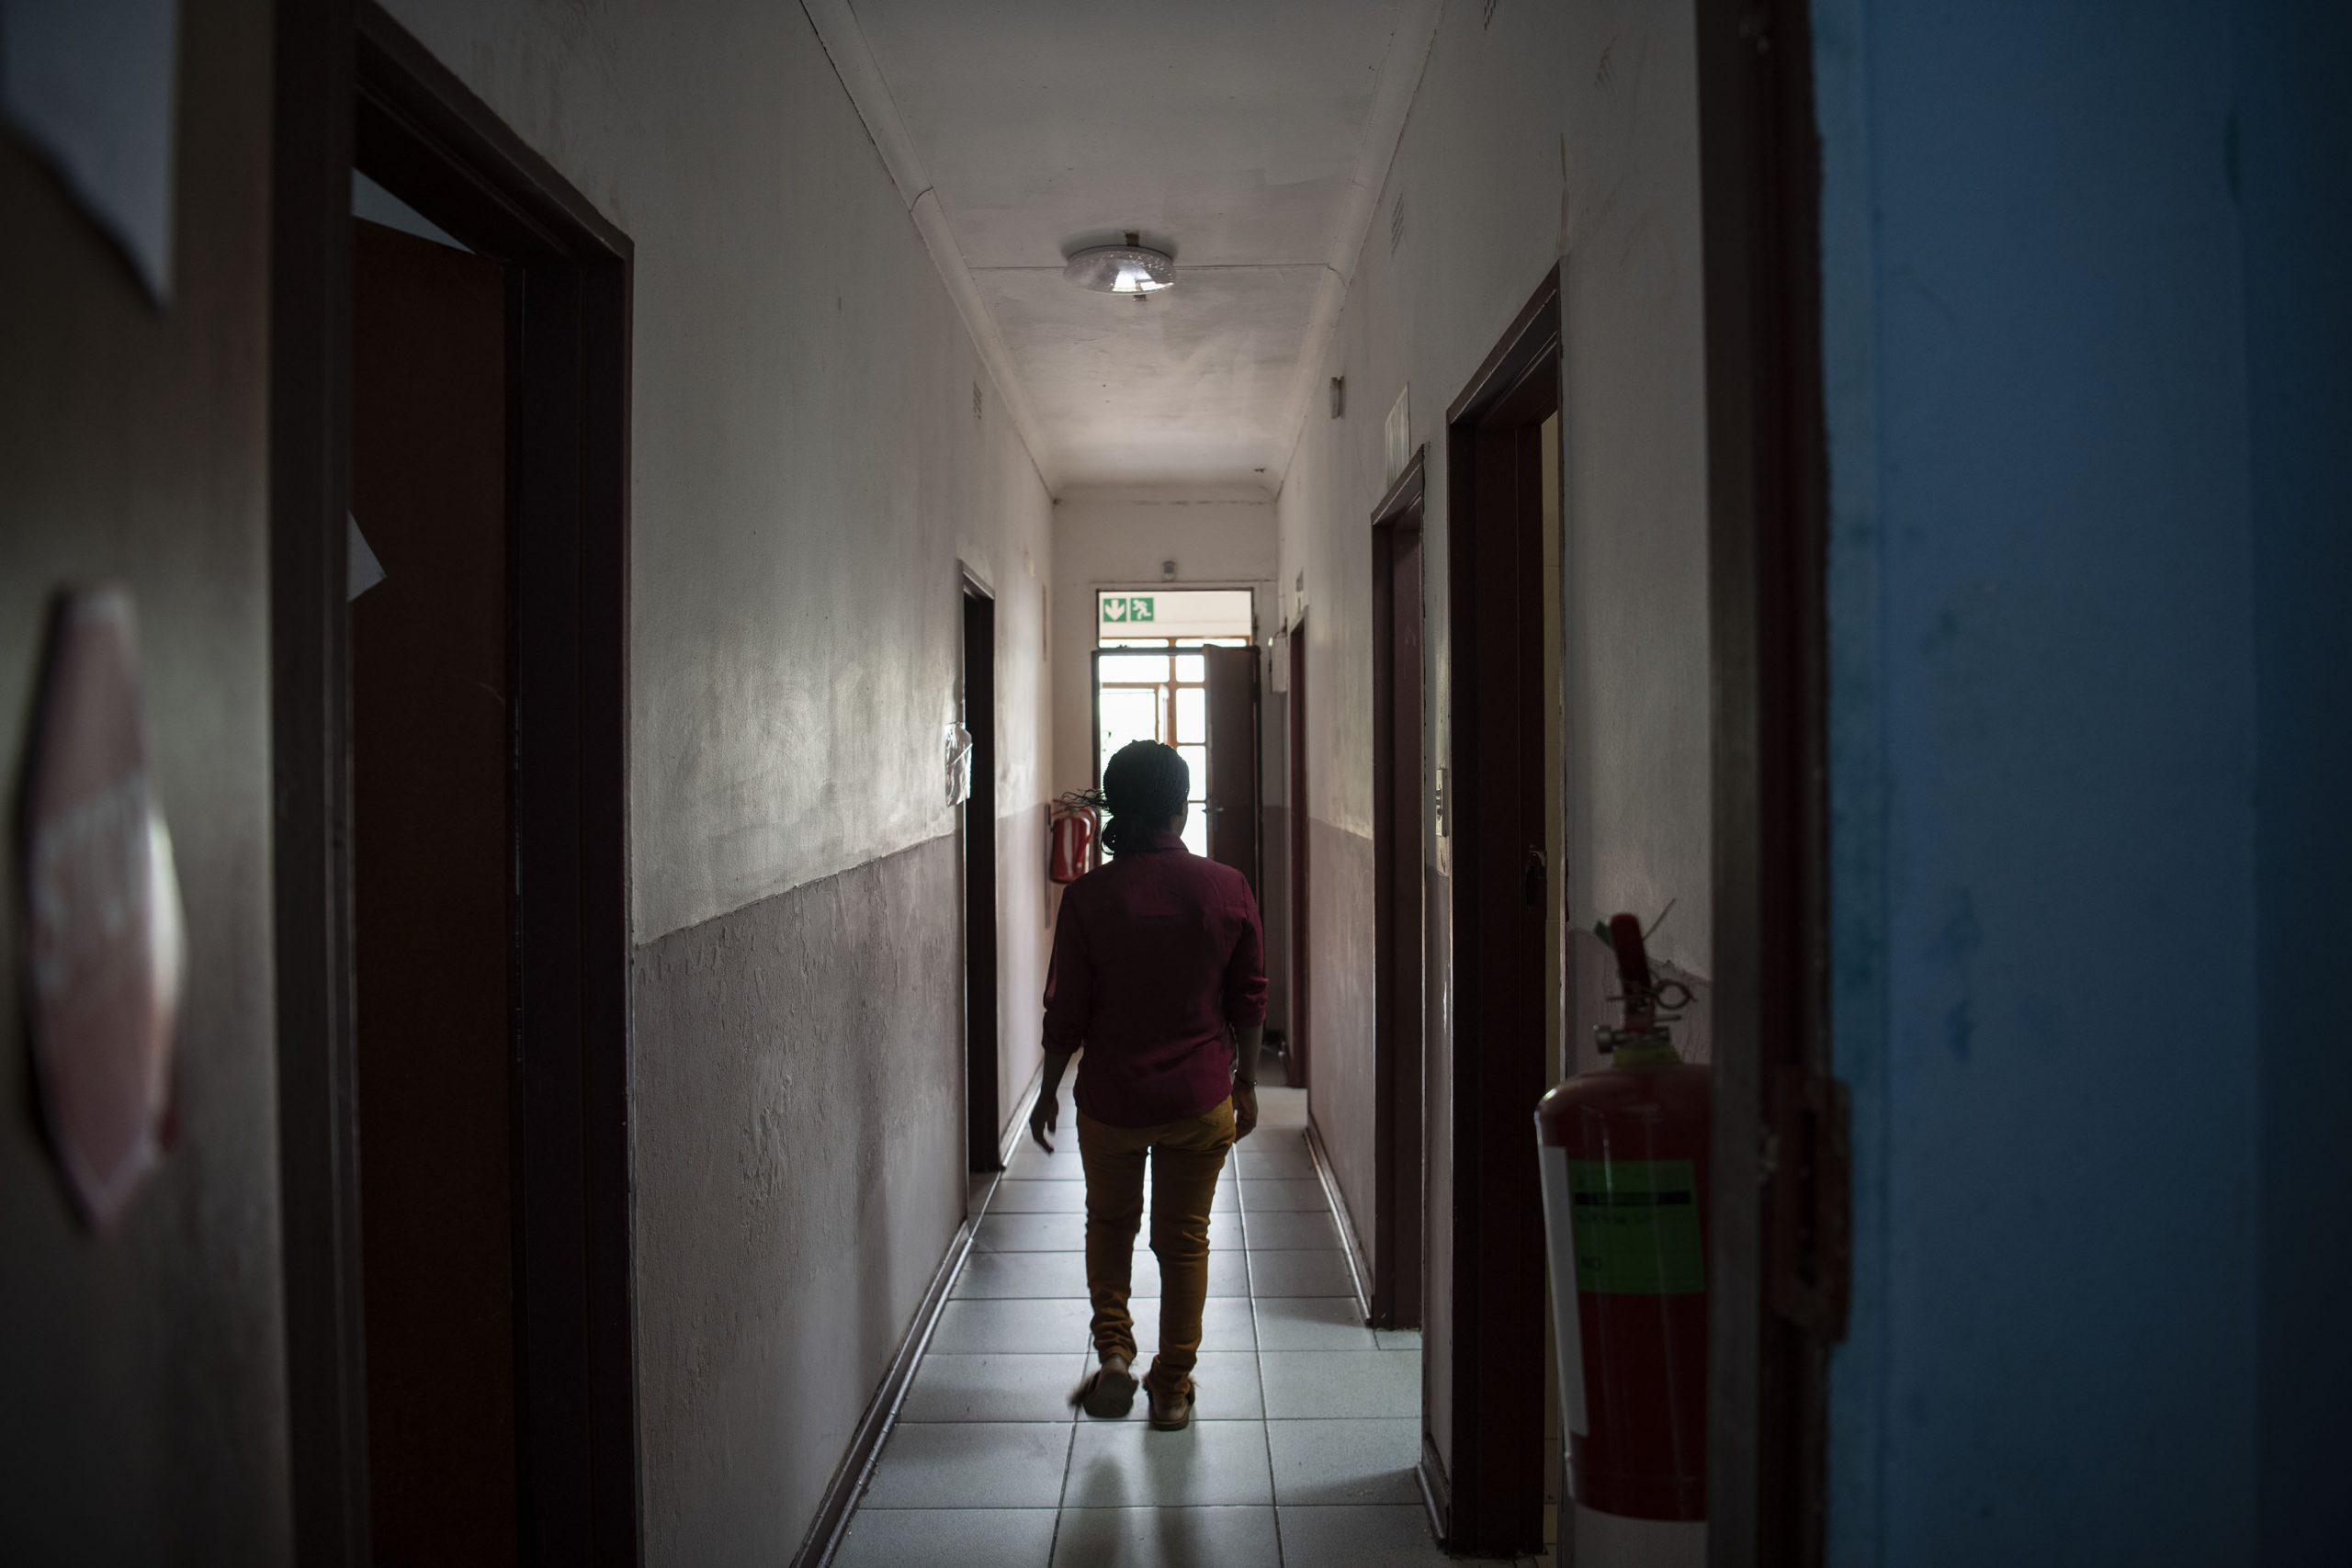 13 December 2019: Women at the shelter are often the victims of human trafficking.